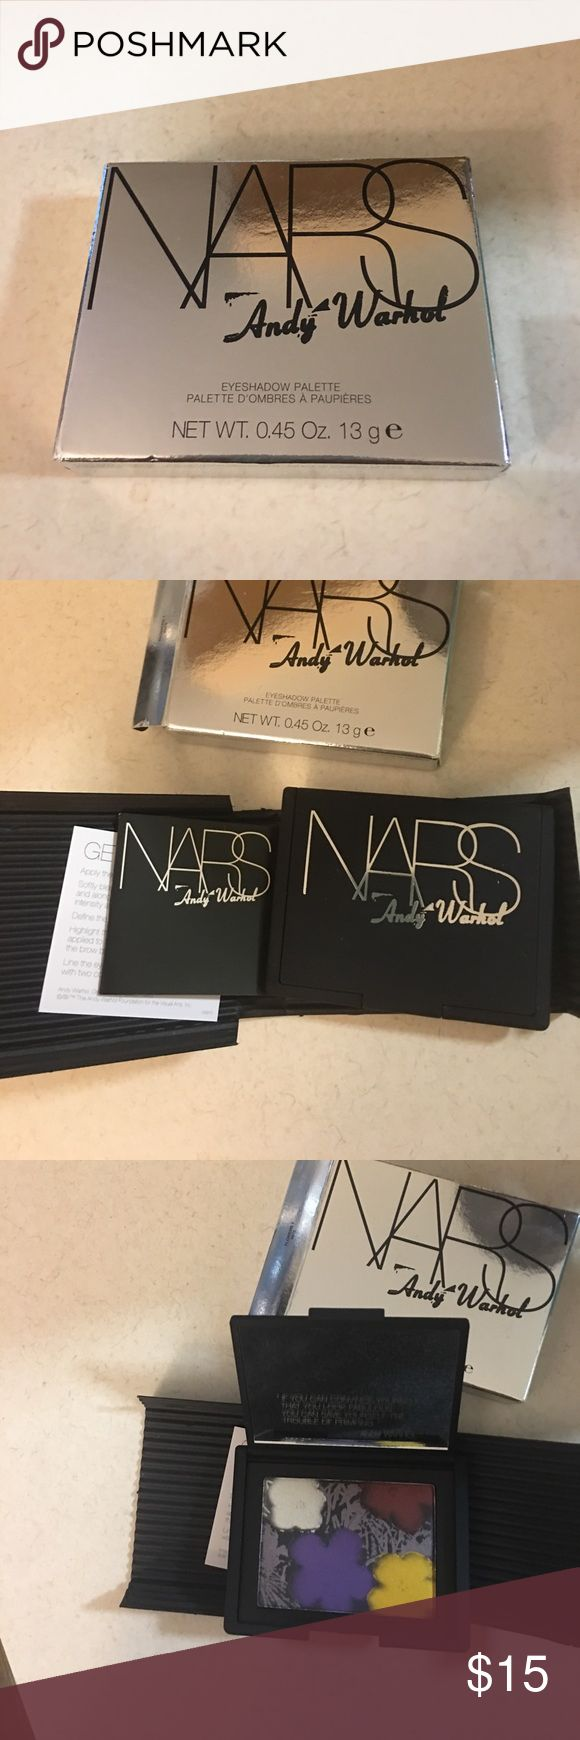 NARS Andy Warhol eyeshadow palette Limited edition flowers 1 new in box, just taken out for picture NARS Makeup Eyeshadow